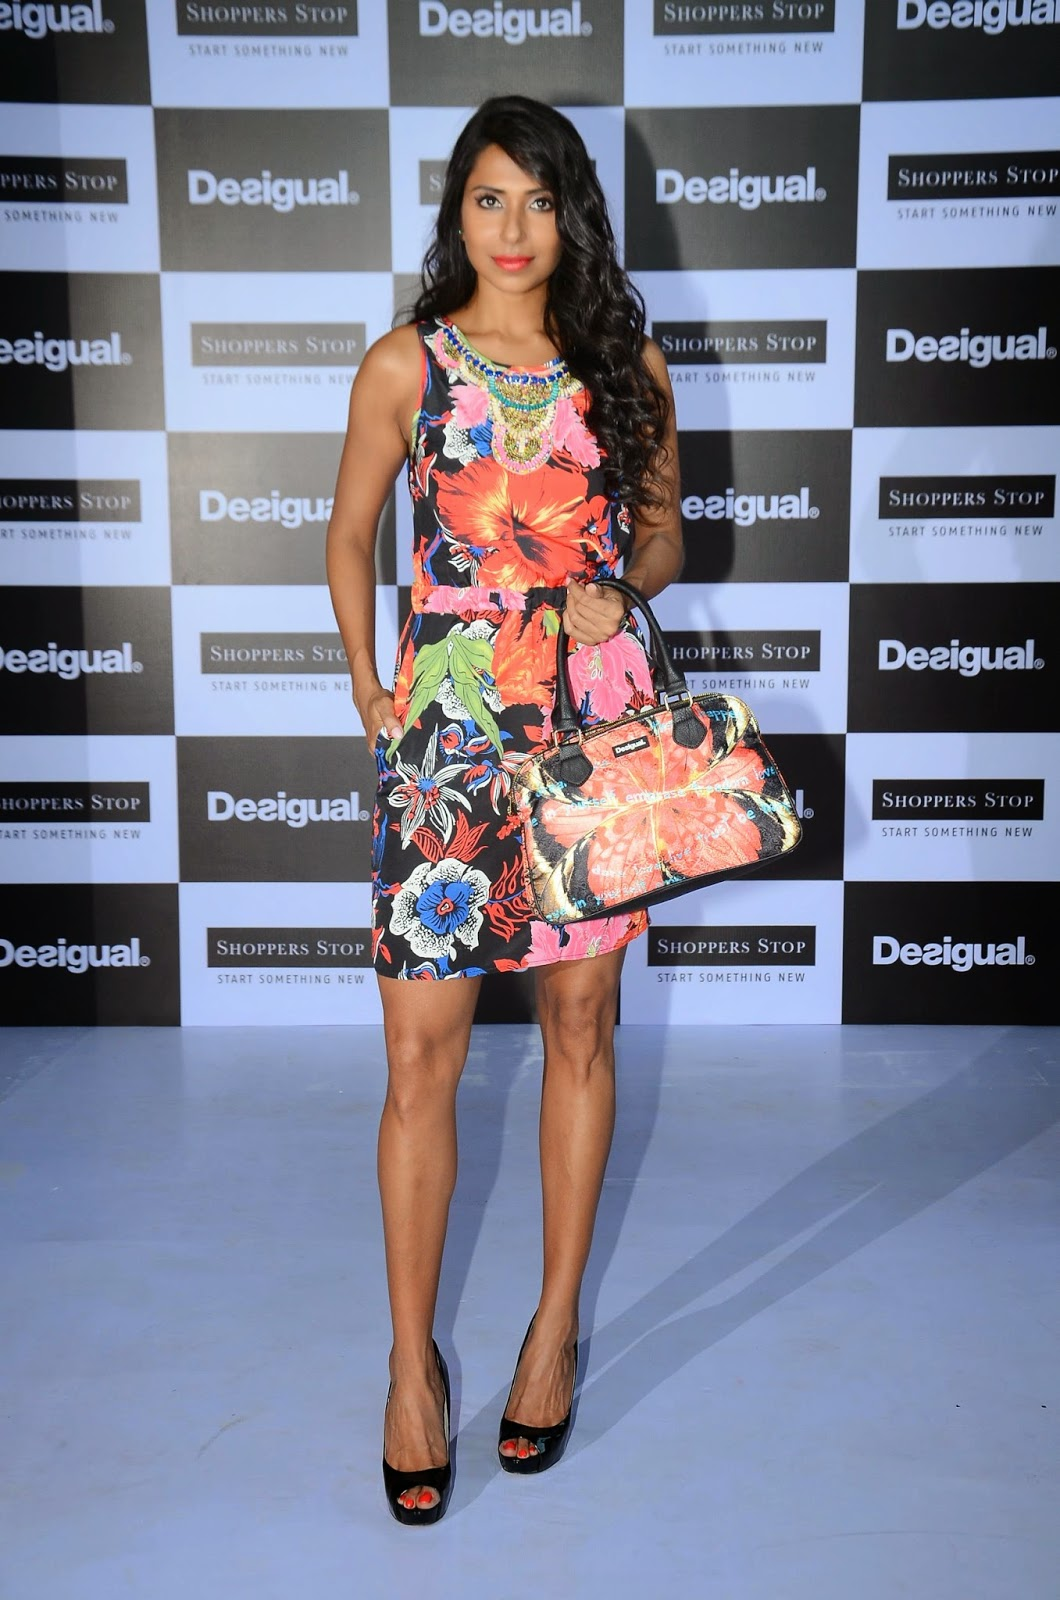 Shoppers Stop launches Desigual Shop-in-Shop in India ...